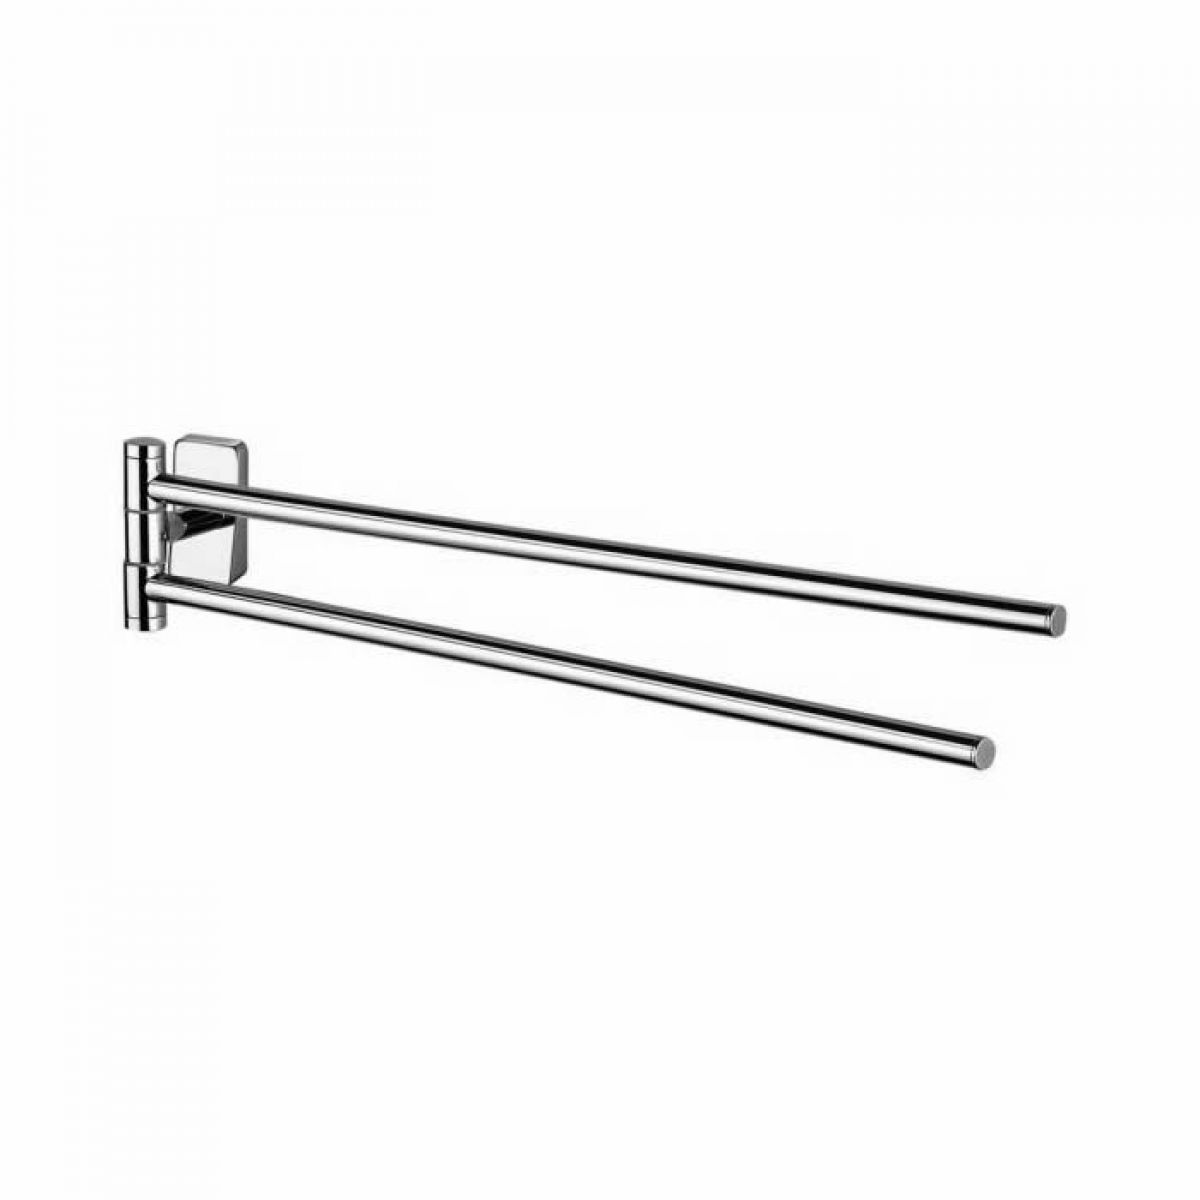 Inda Storm Adjustable Double Towel Rail : UK Bathrooms